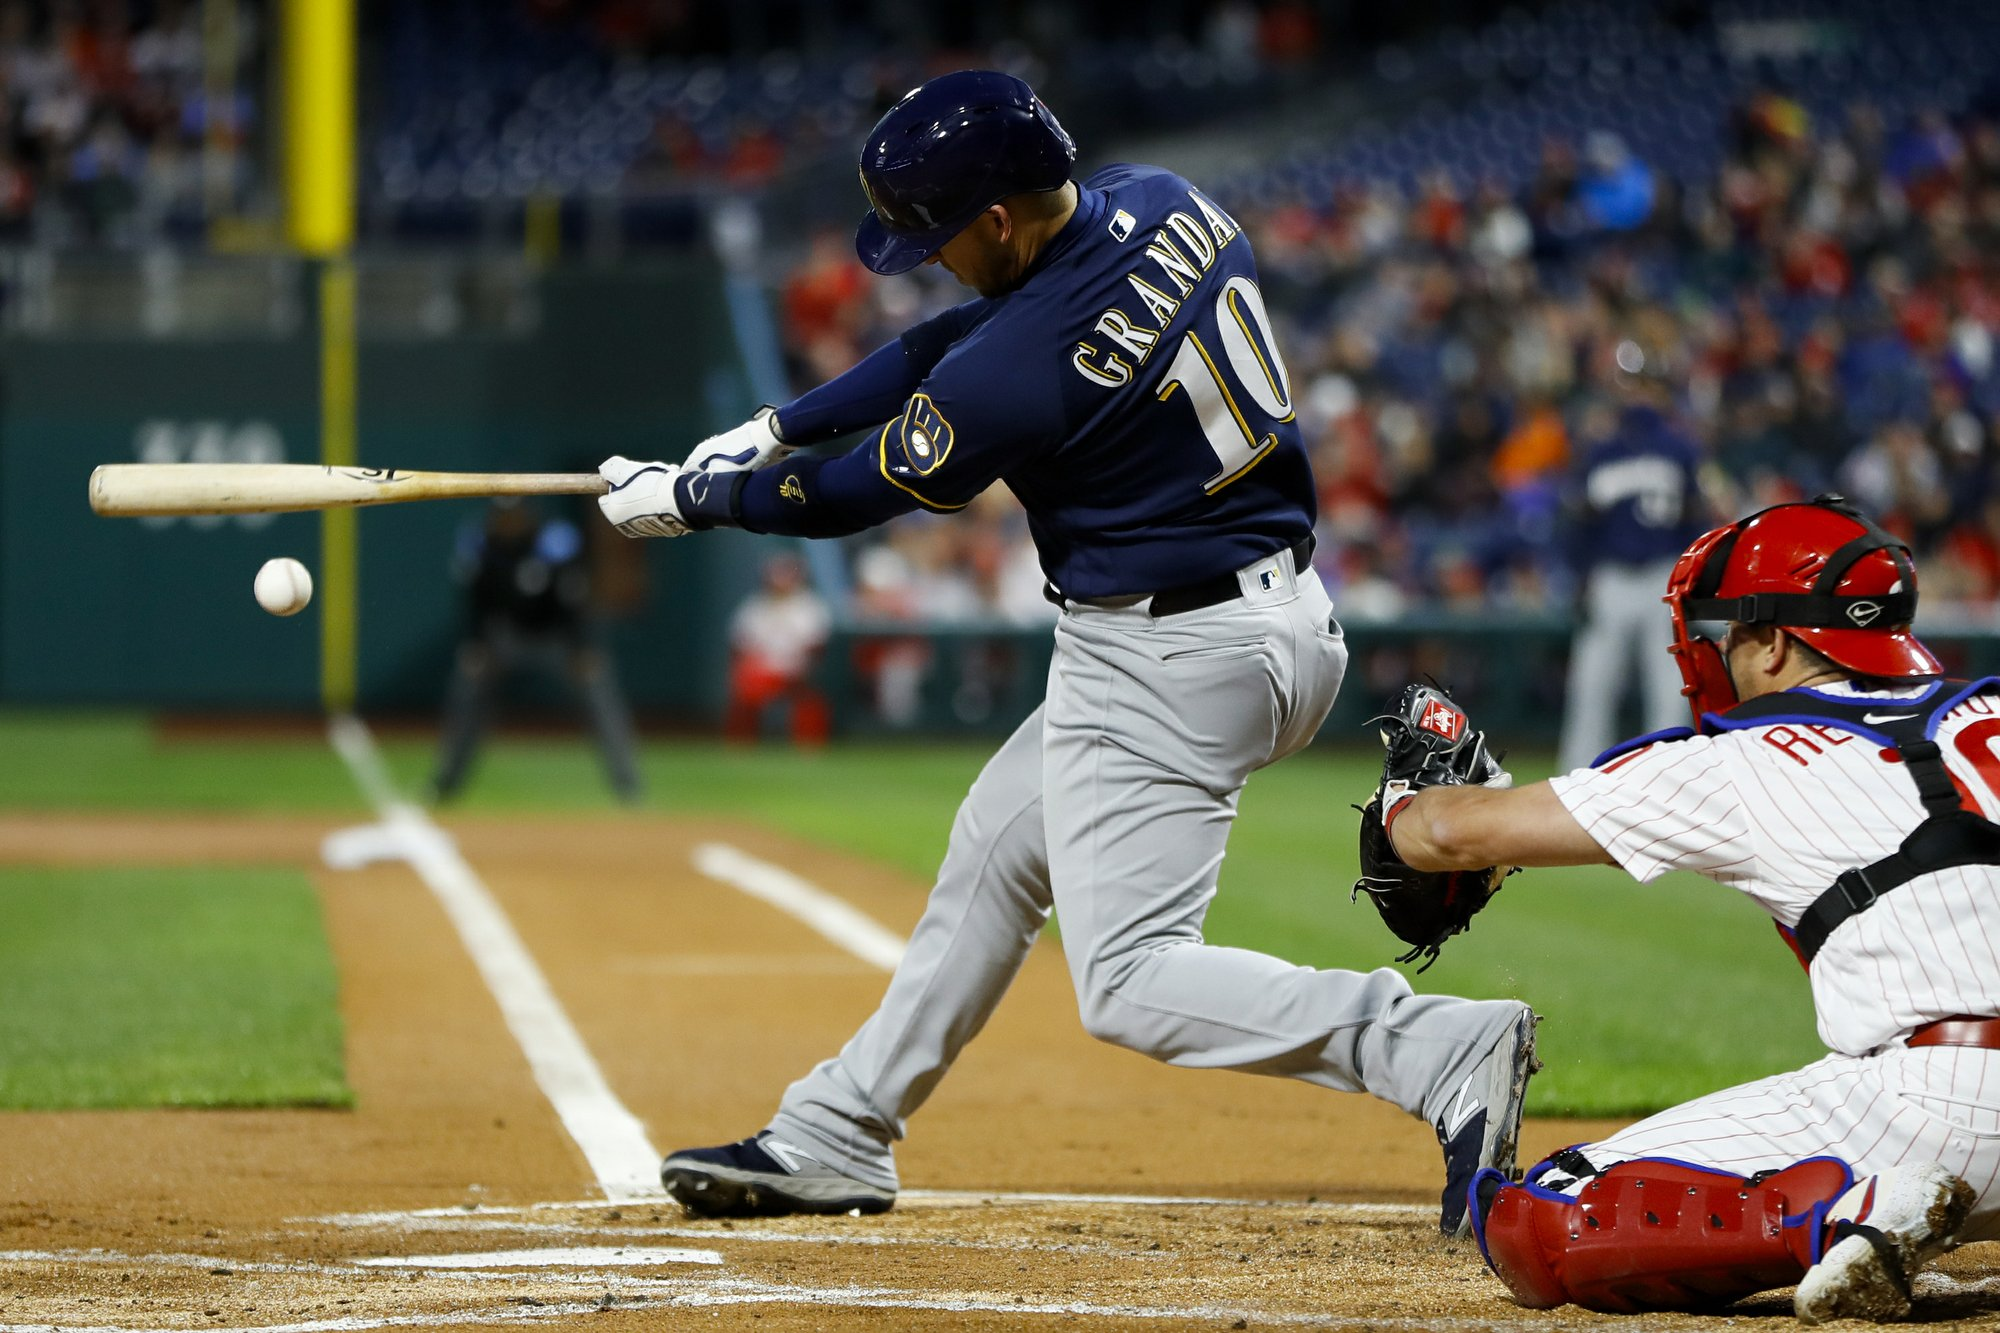 Brewers drop third straight, in game featuring 13 pitchers